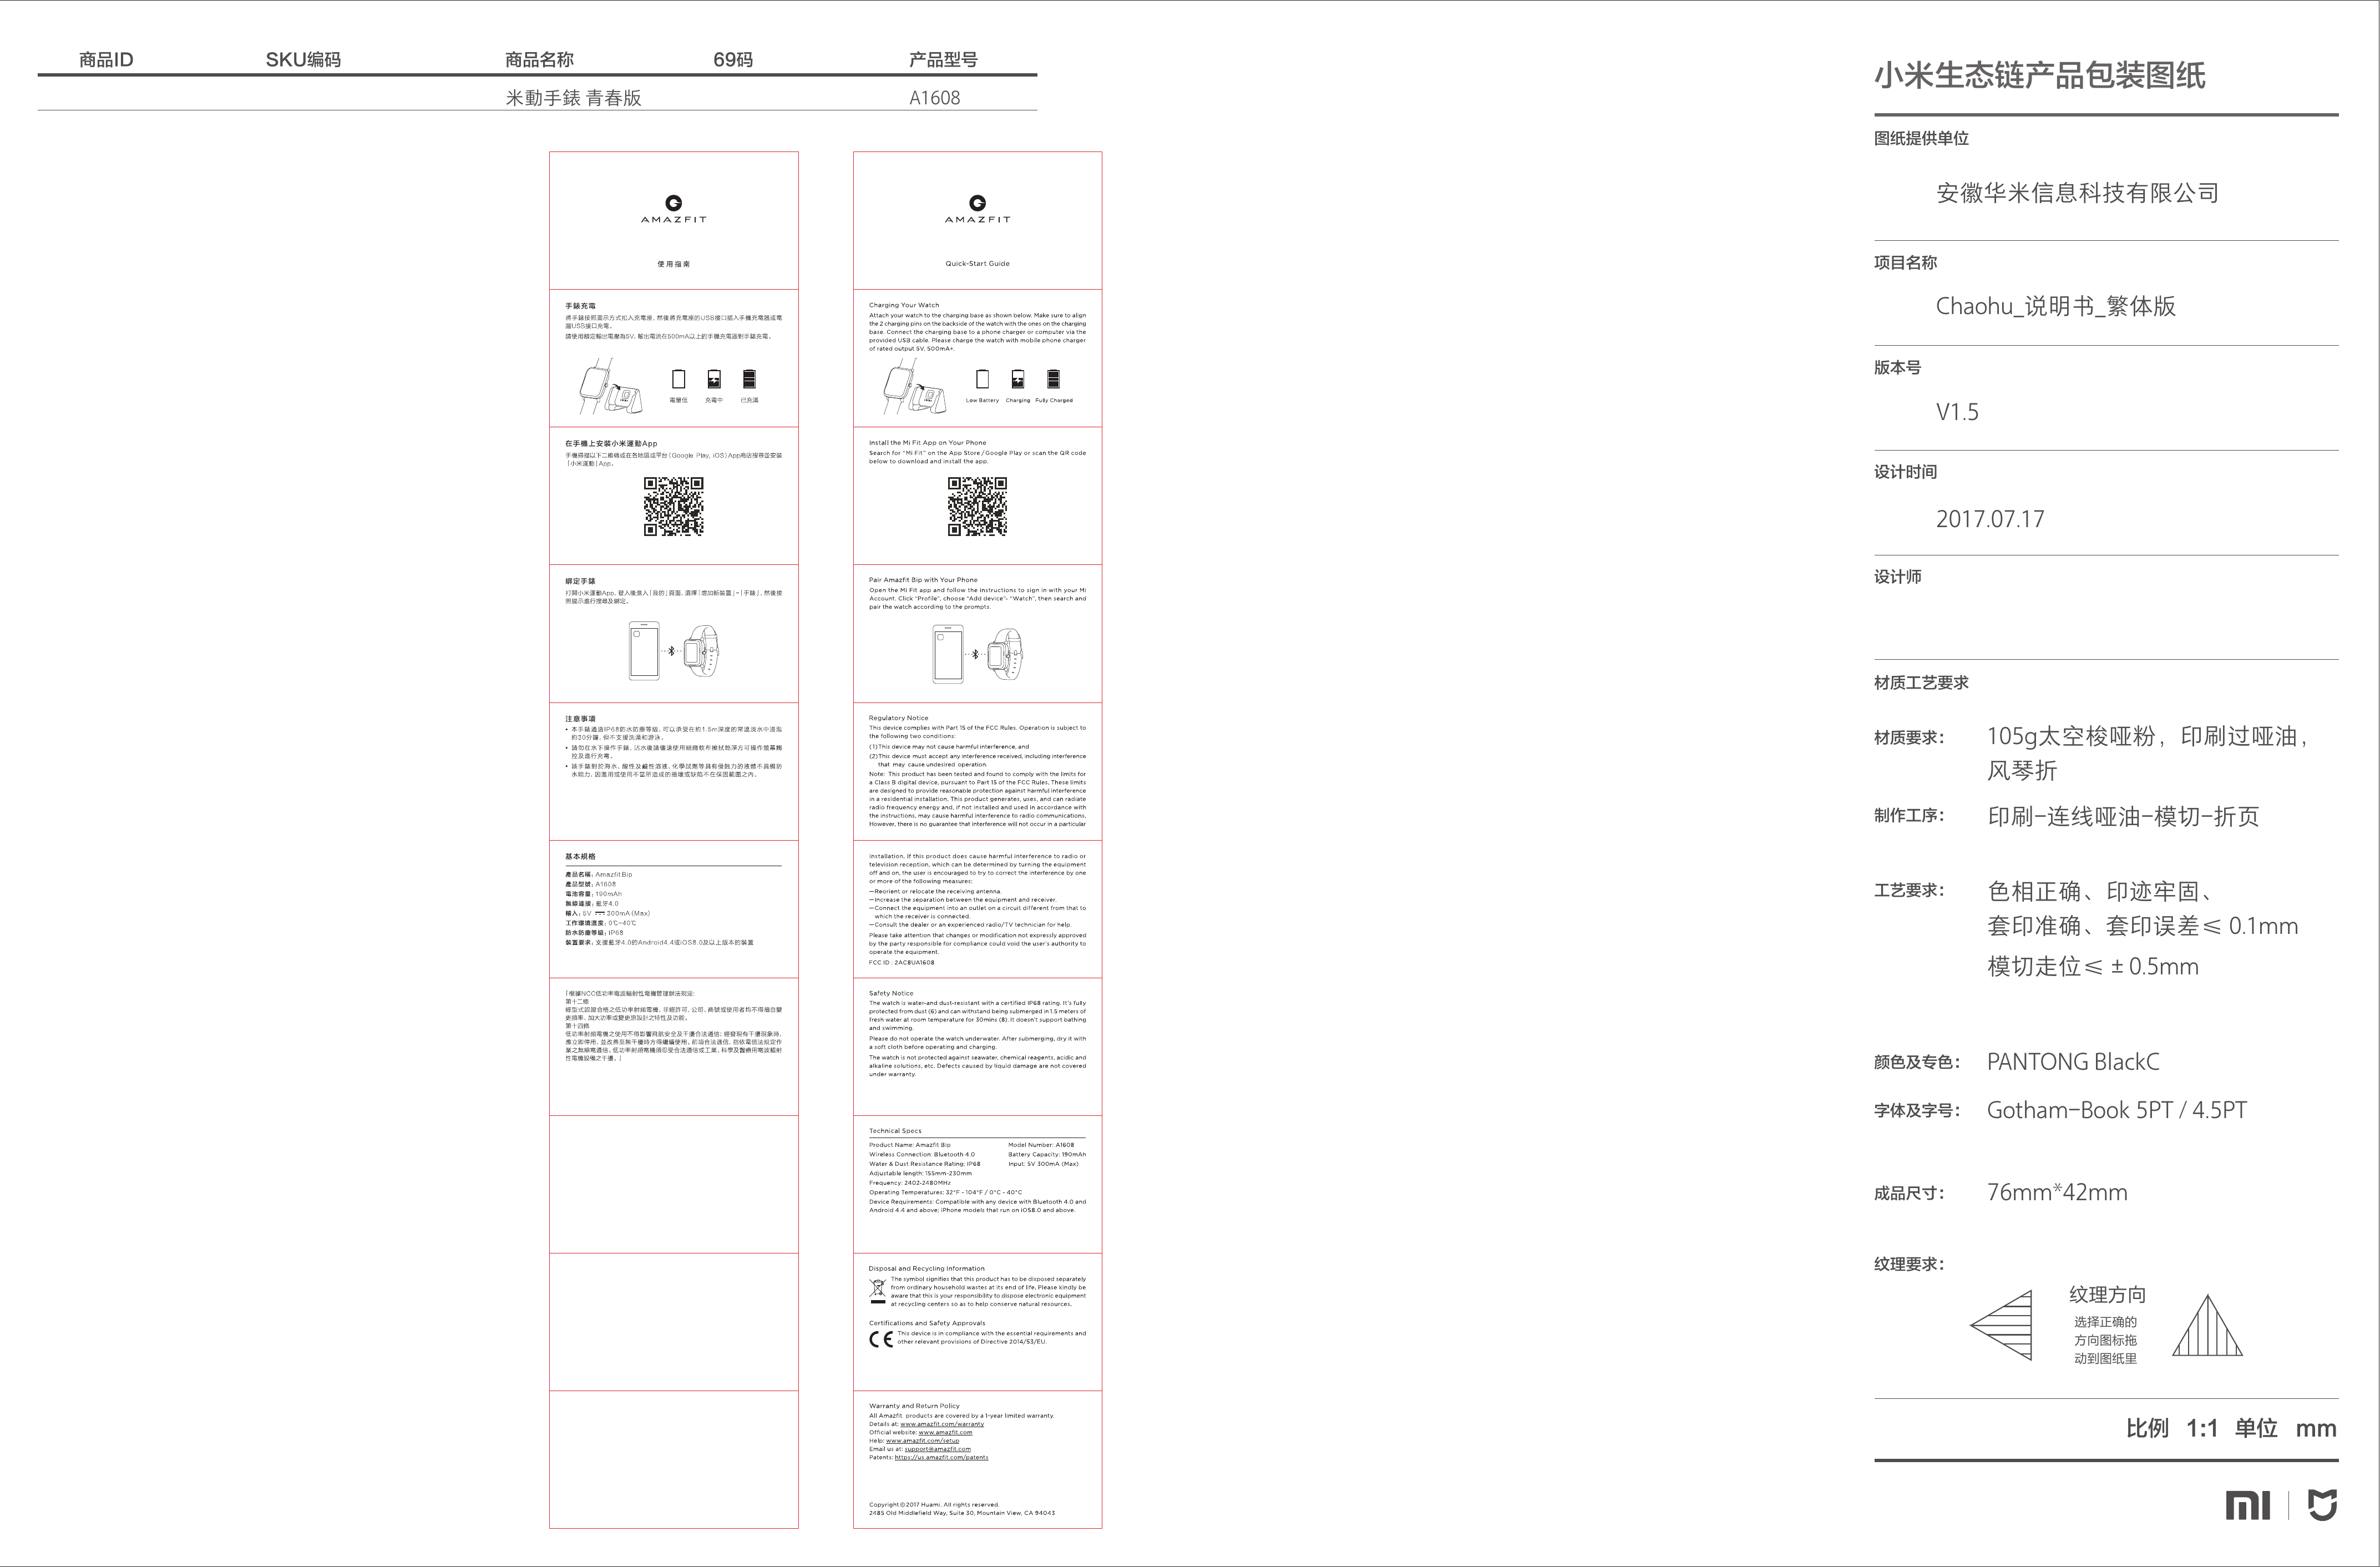 Anhui Huami Information Technology A1608 Amazfit Bip User Manual Xiaomi Charger